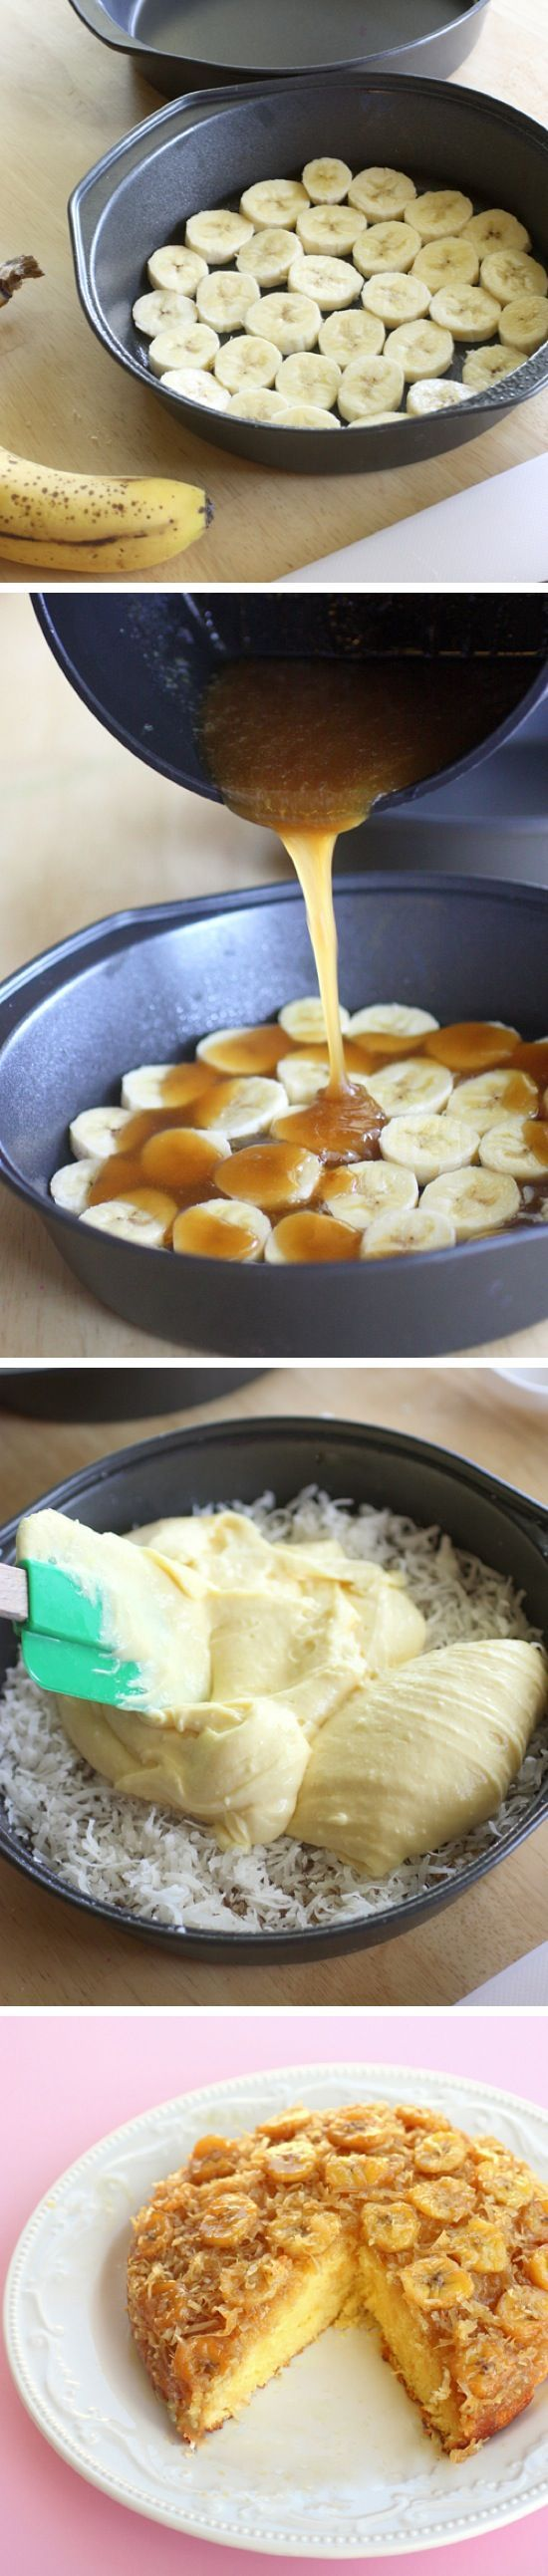 Banana Coconut Upside Down Cake | CookJino